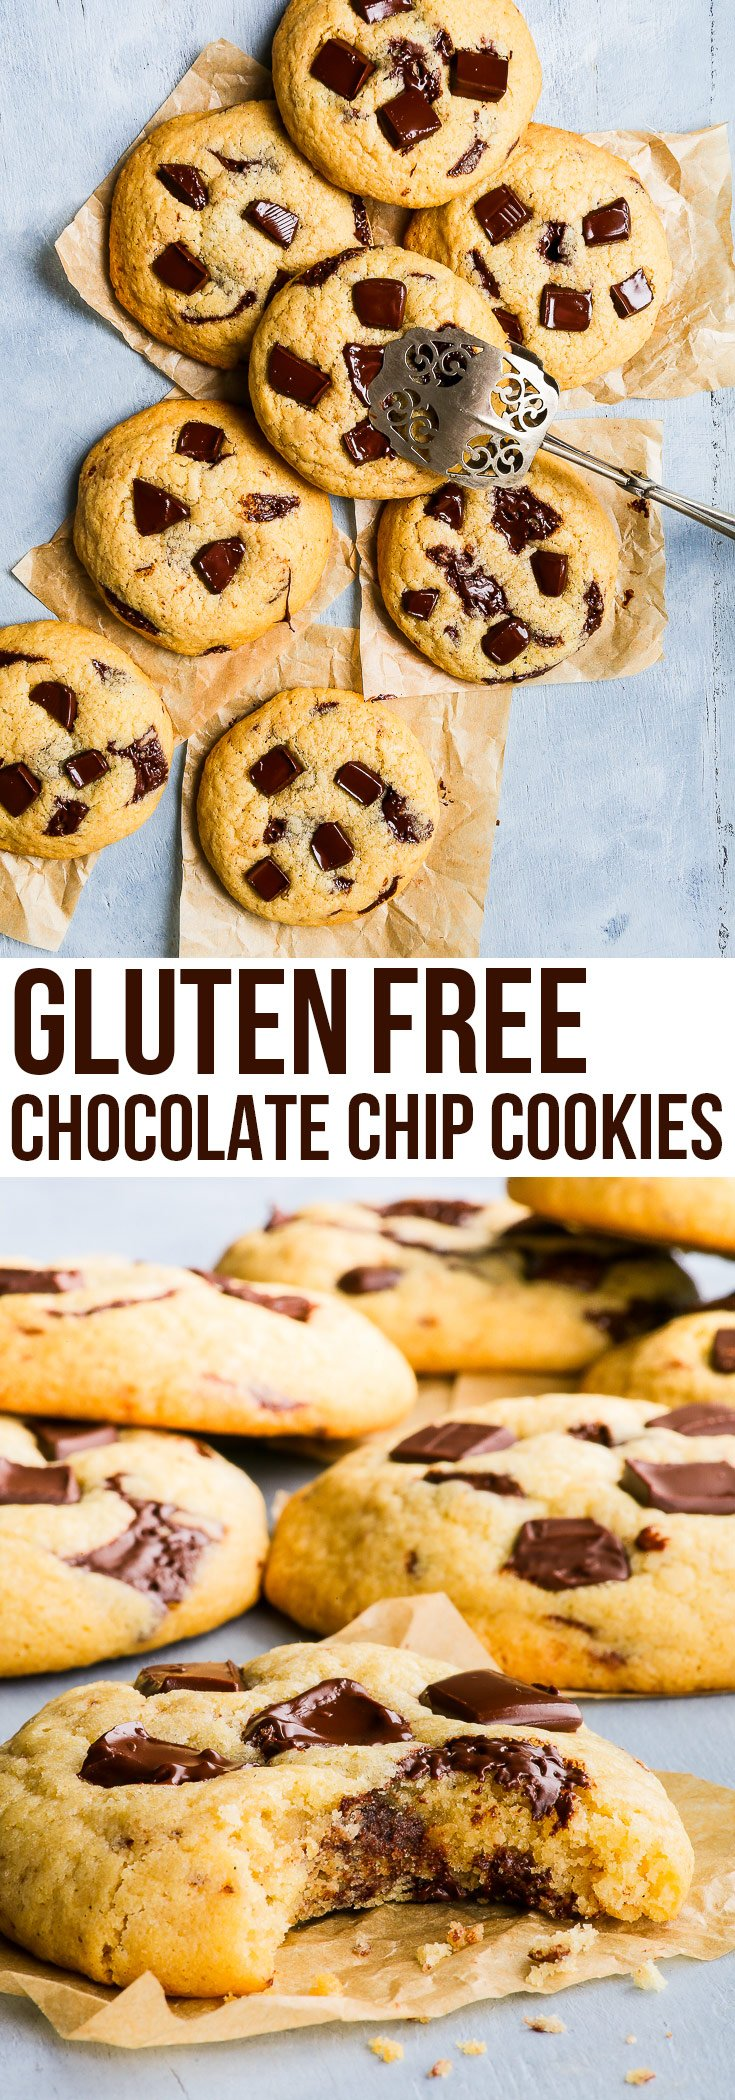 These gluten free chocolate chip cookies are deliciously soft, buttery and sweet, with bursts of chocolate in every mouthful. The perfect easy gluten free dessert. #chocolatechipcookie #glutenfree